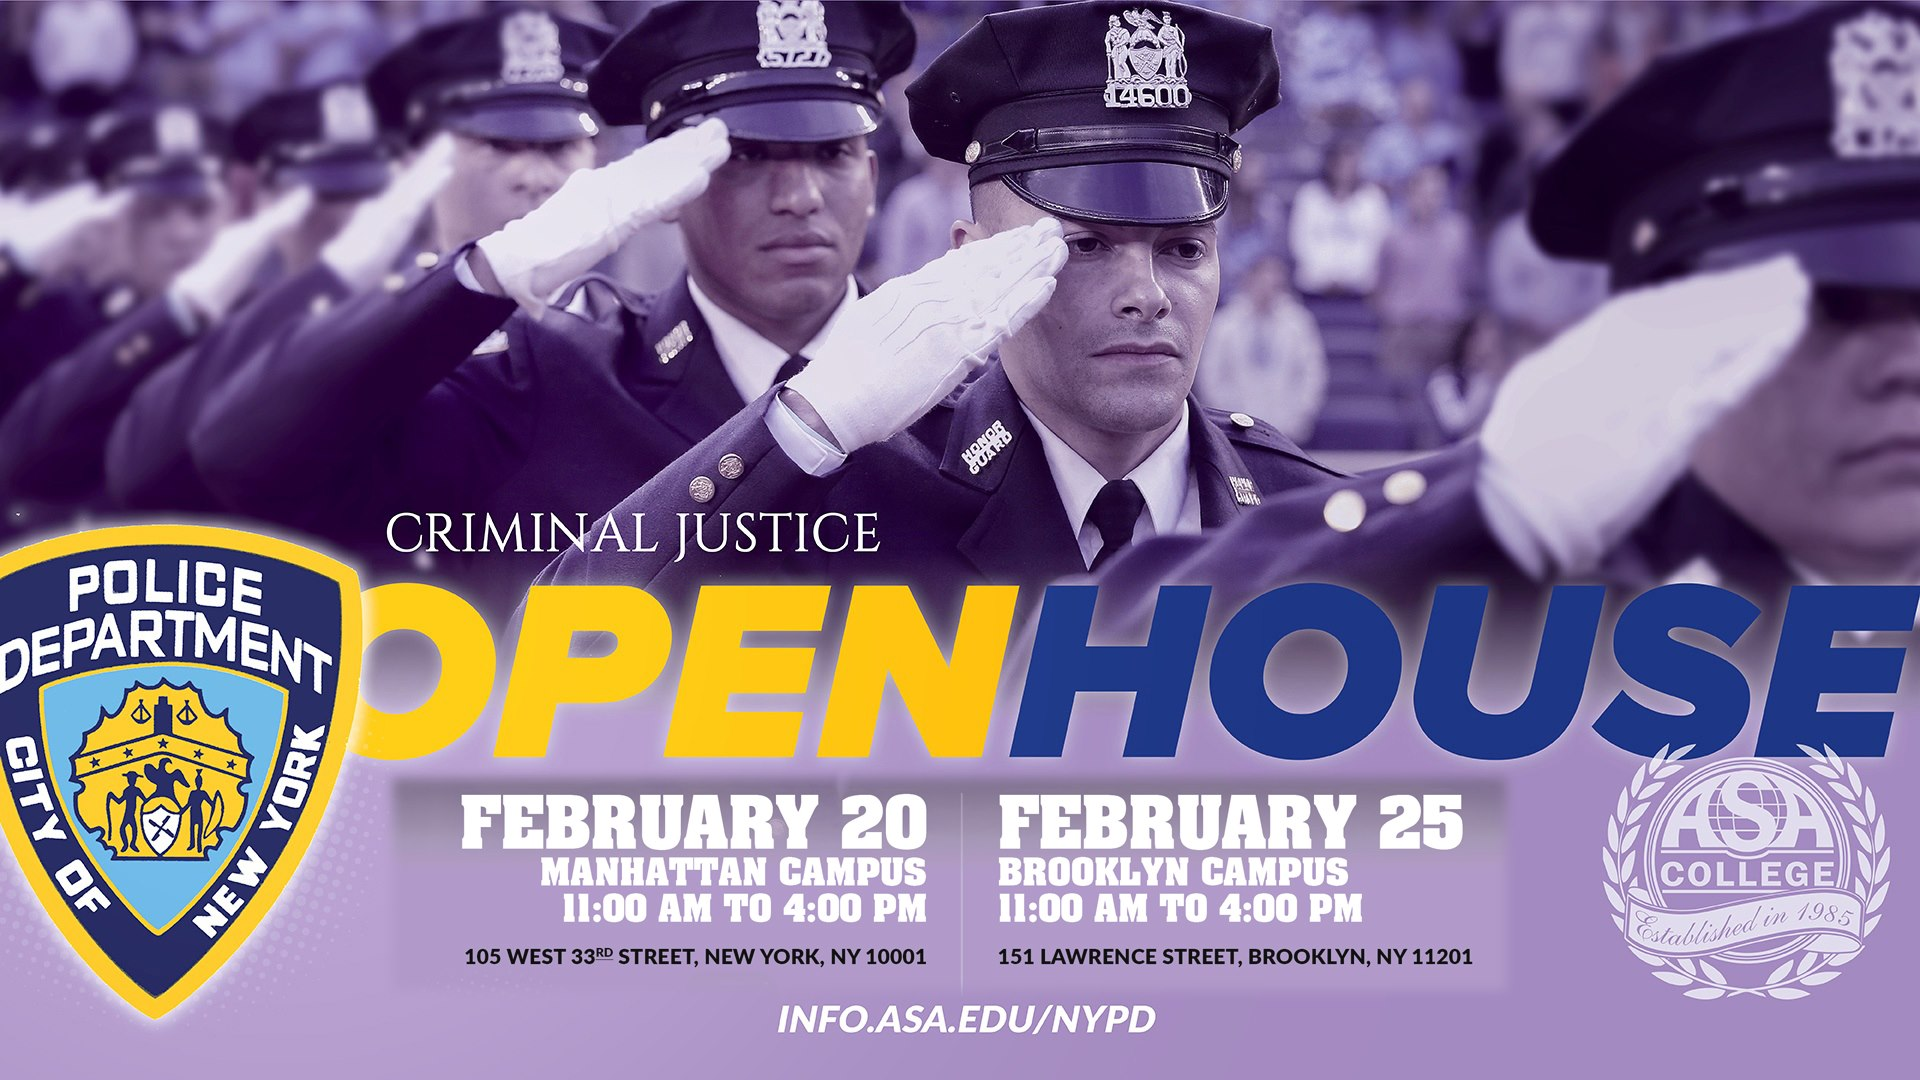 NY: Criminal Justice Open House at ASA College‎ in Manhattan and Brooklyn